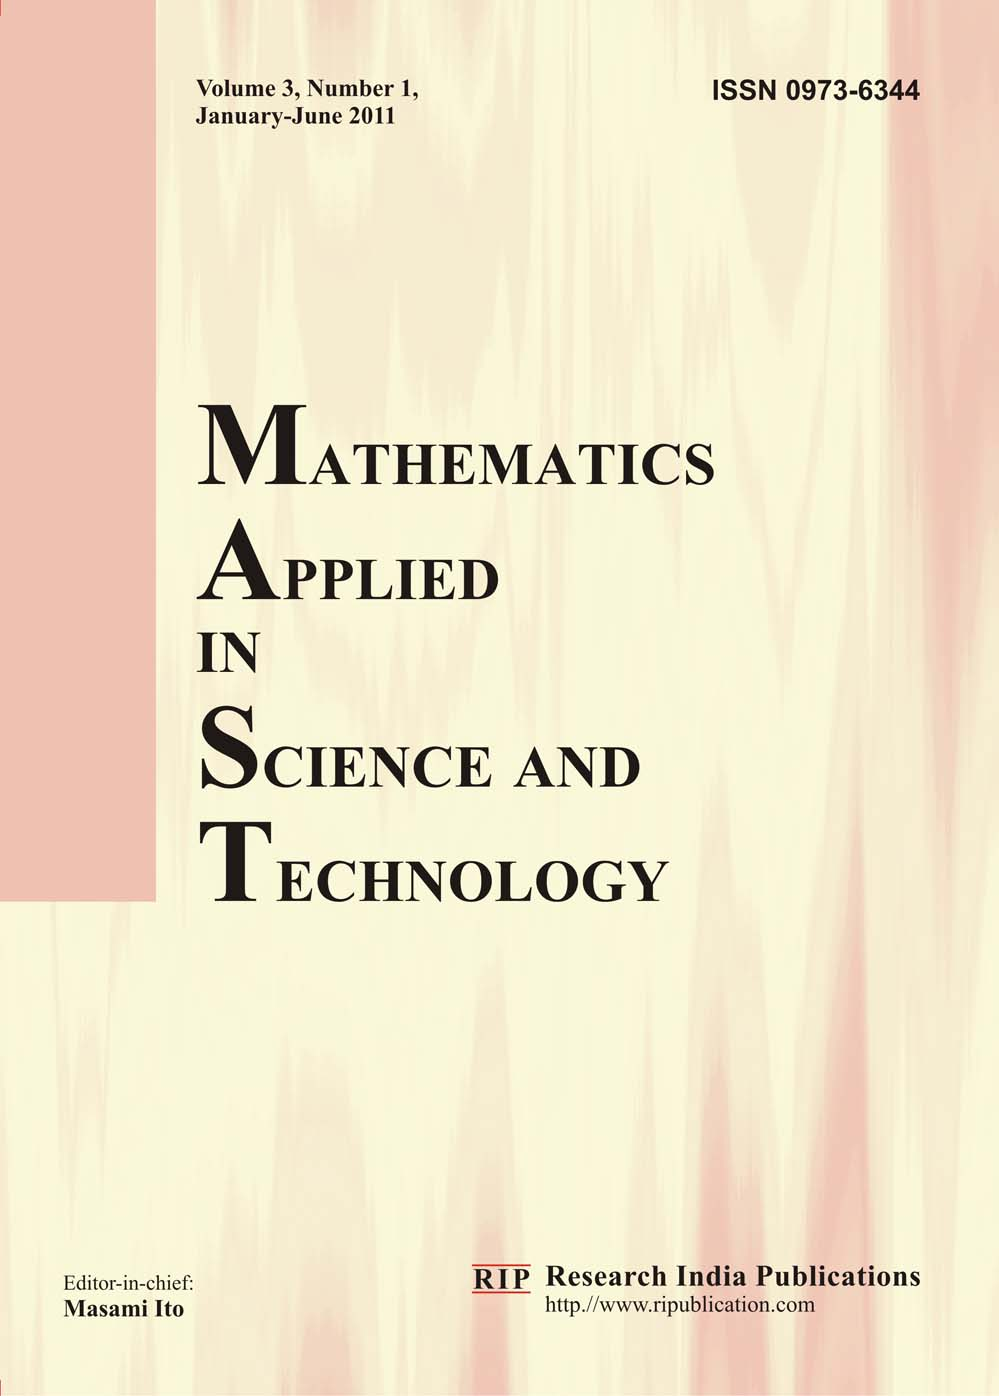 mast  mathematics applied in science and technology  mathematics journals  mathematical journals